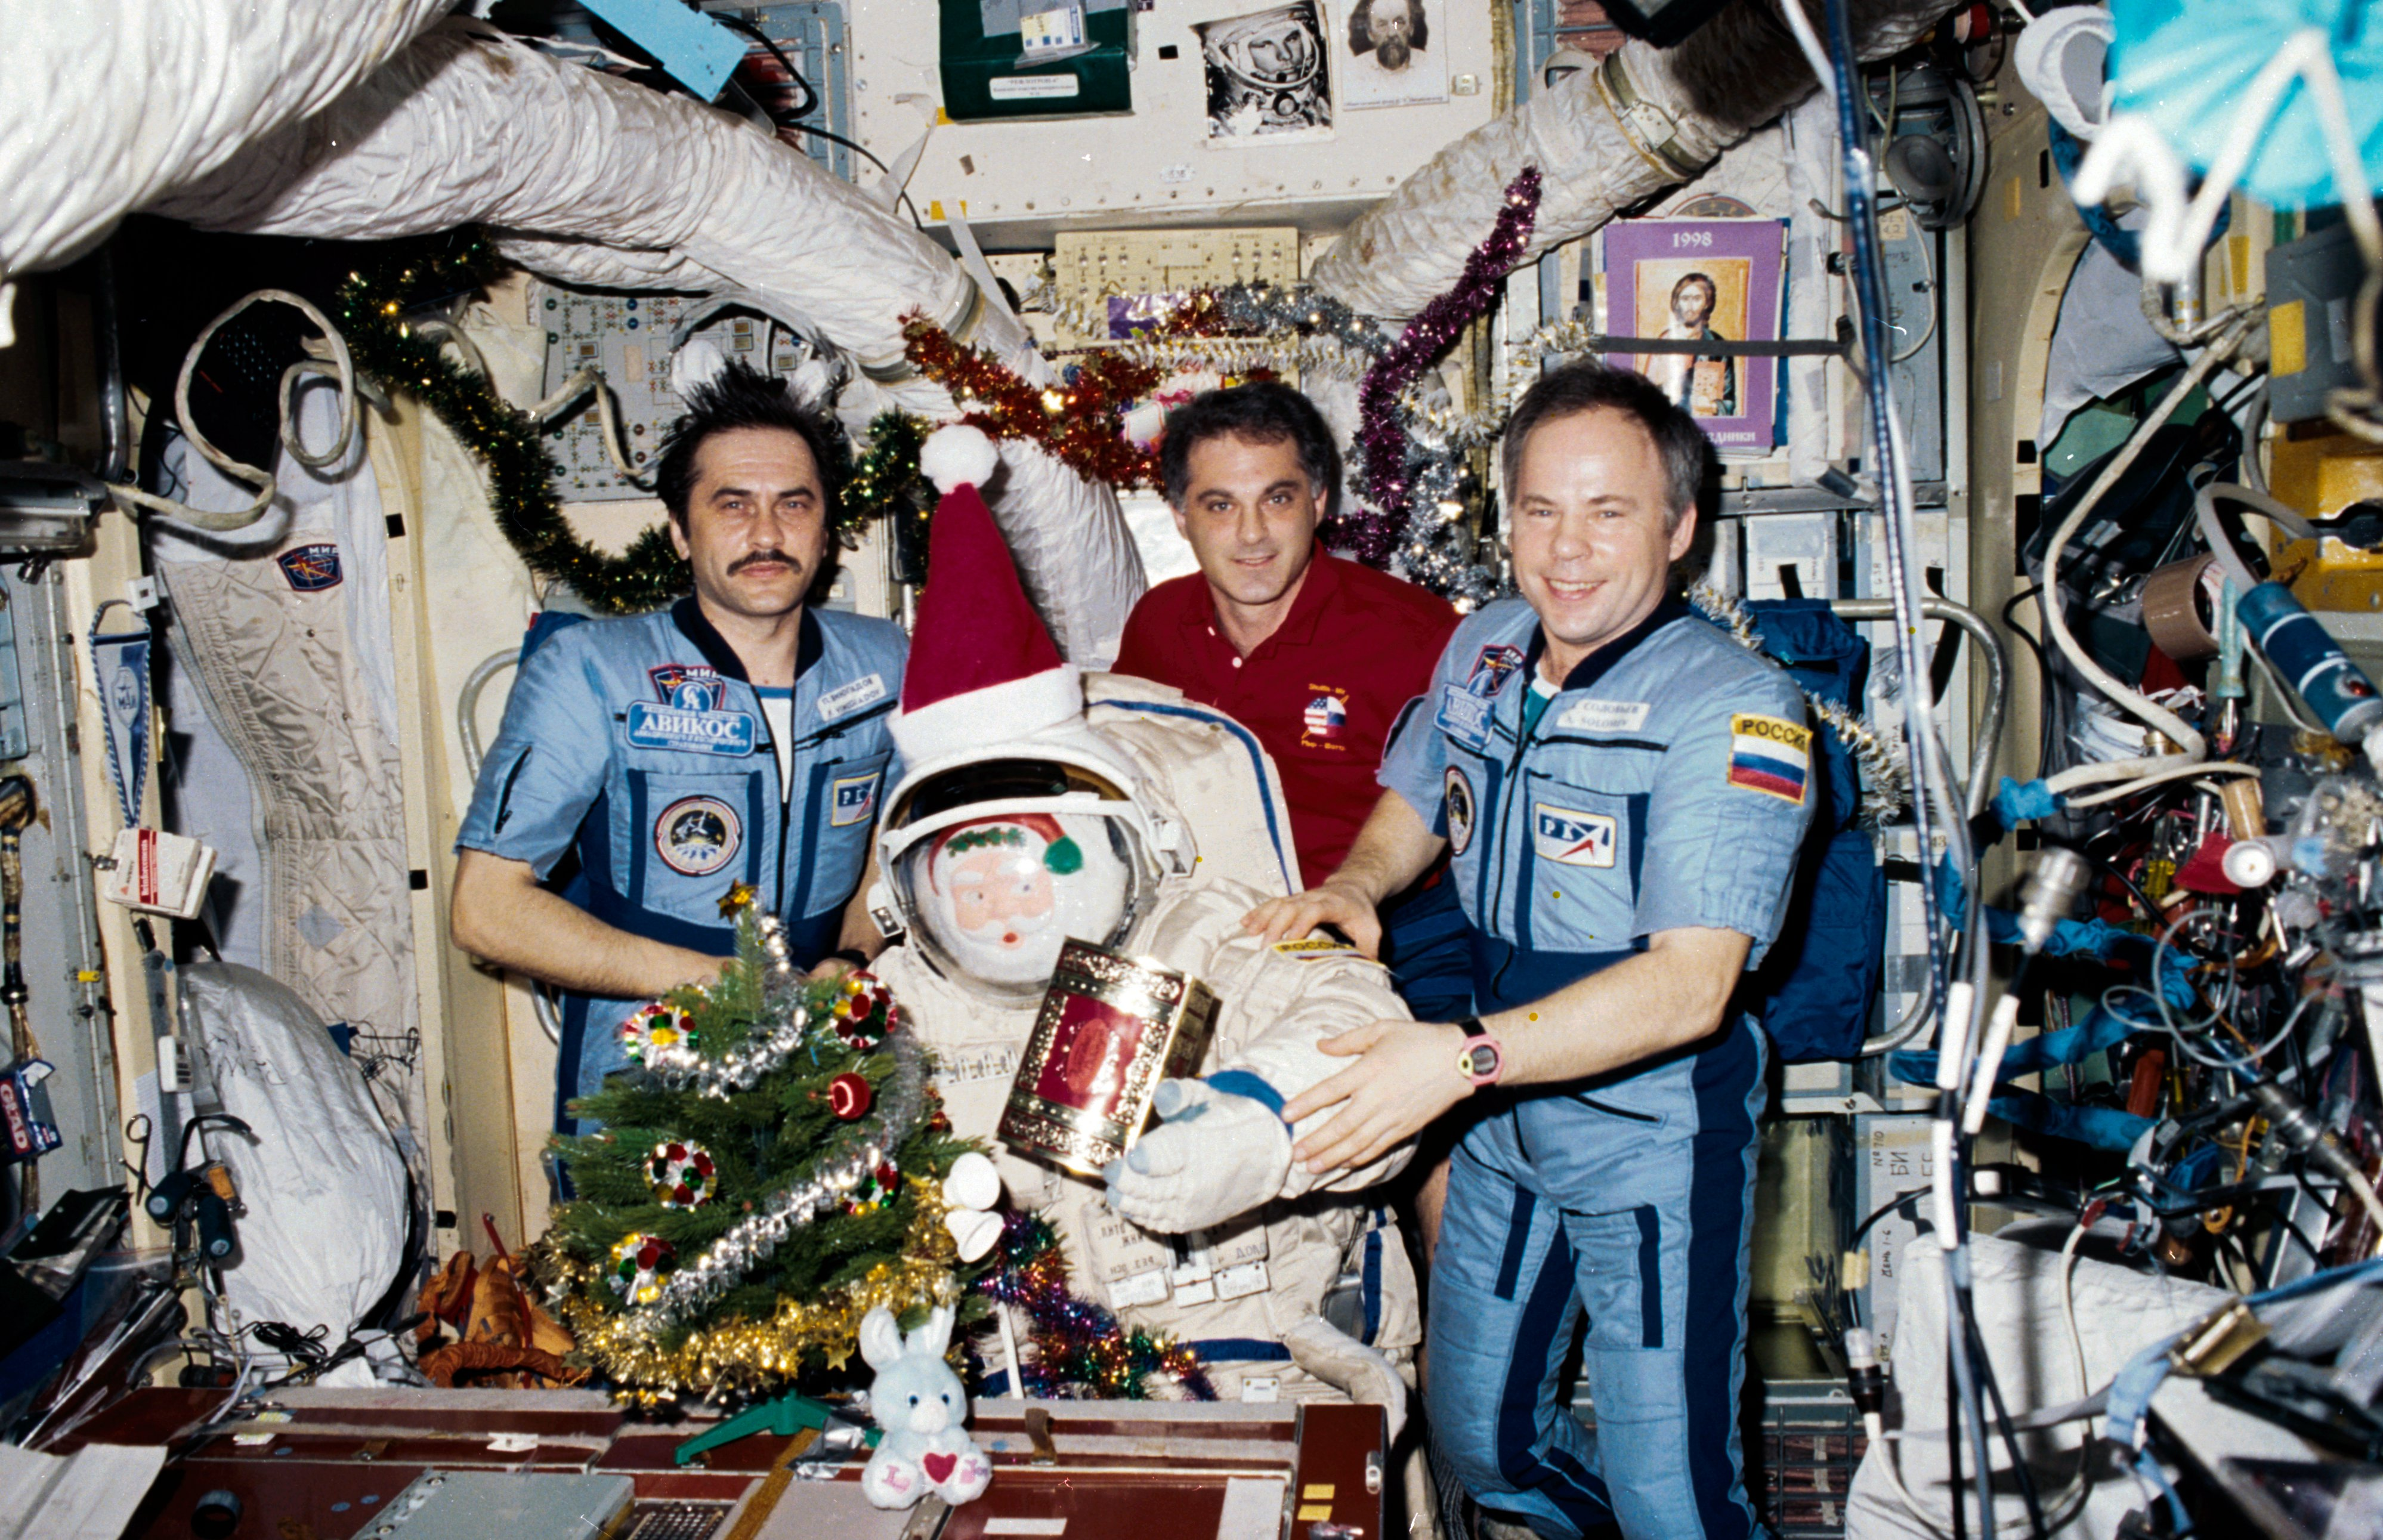 Christmas in space might be more common in the future than in 1987